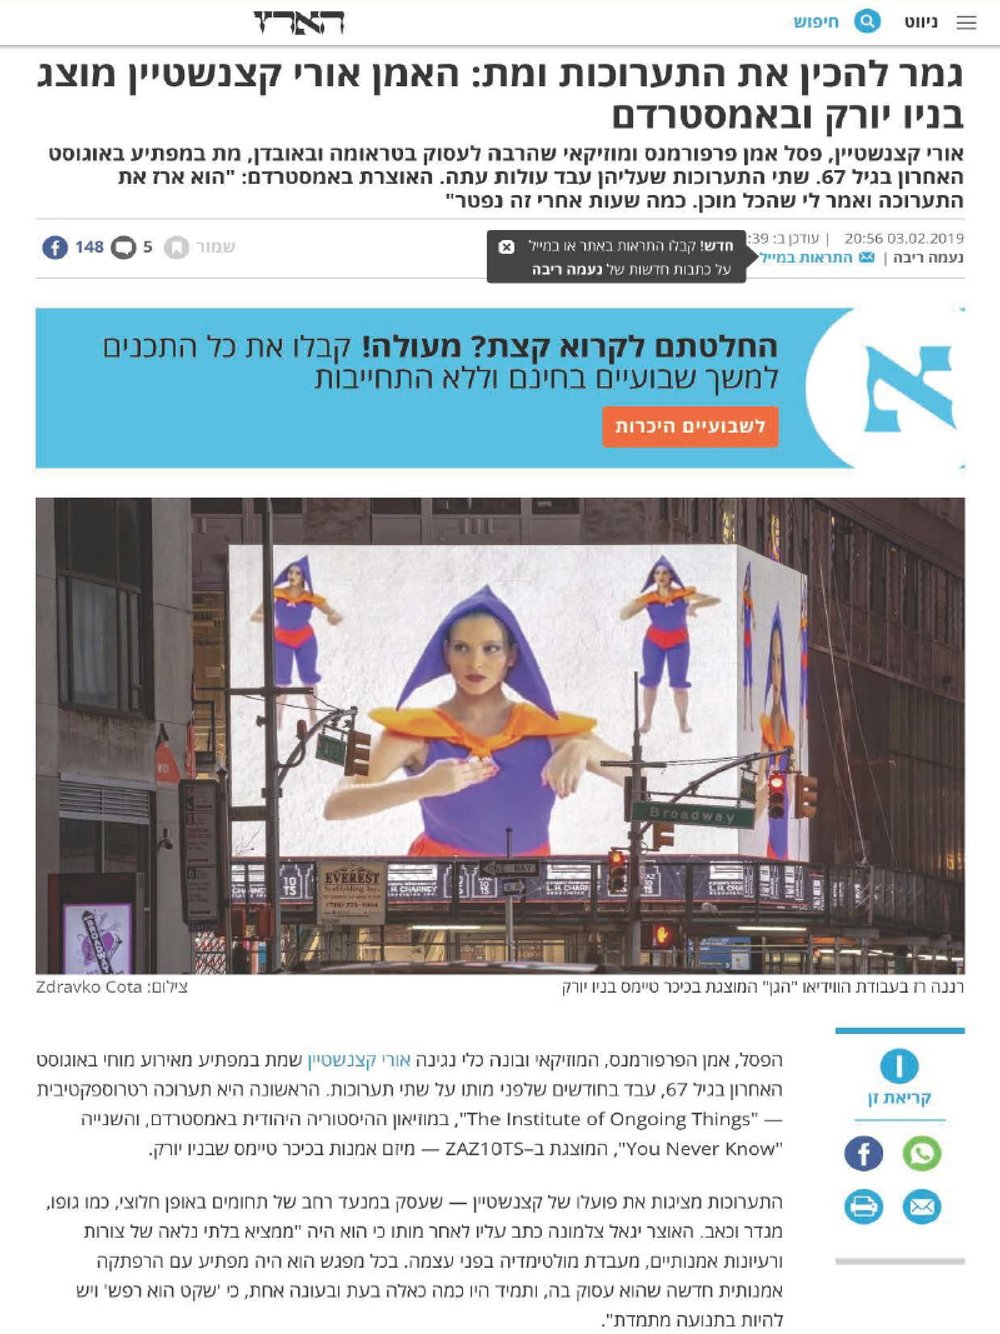 HAARETZ  | January 31, 2019